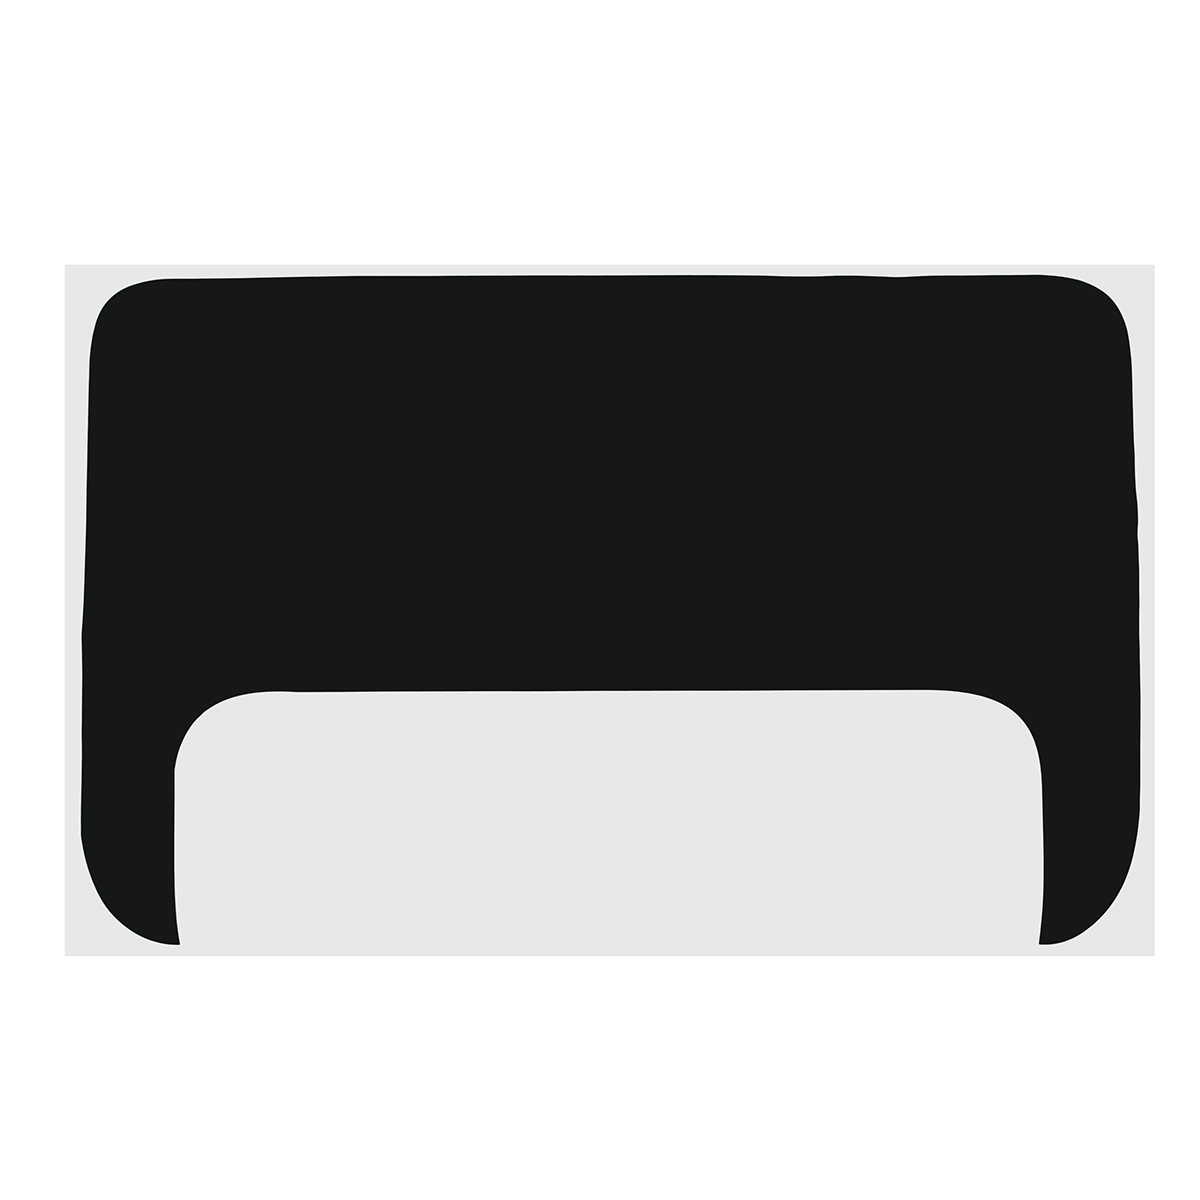 75cm Black Vinyl Hood Scoop Decal Graphics For Toyota